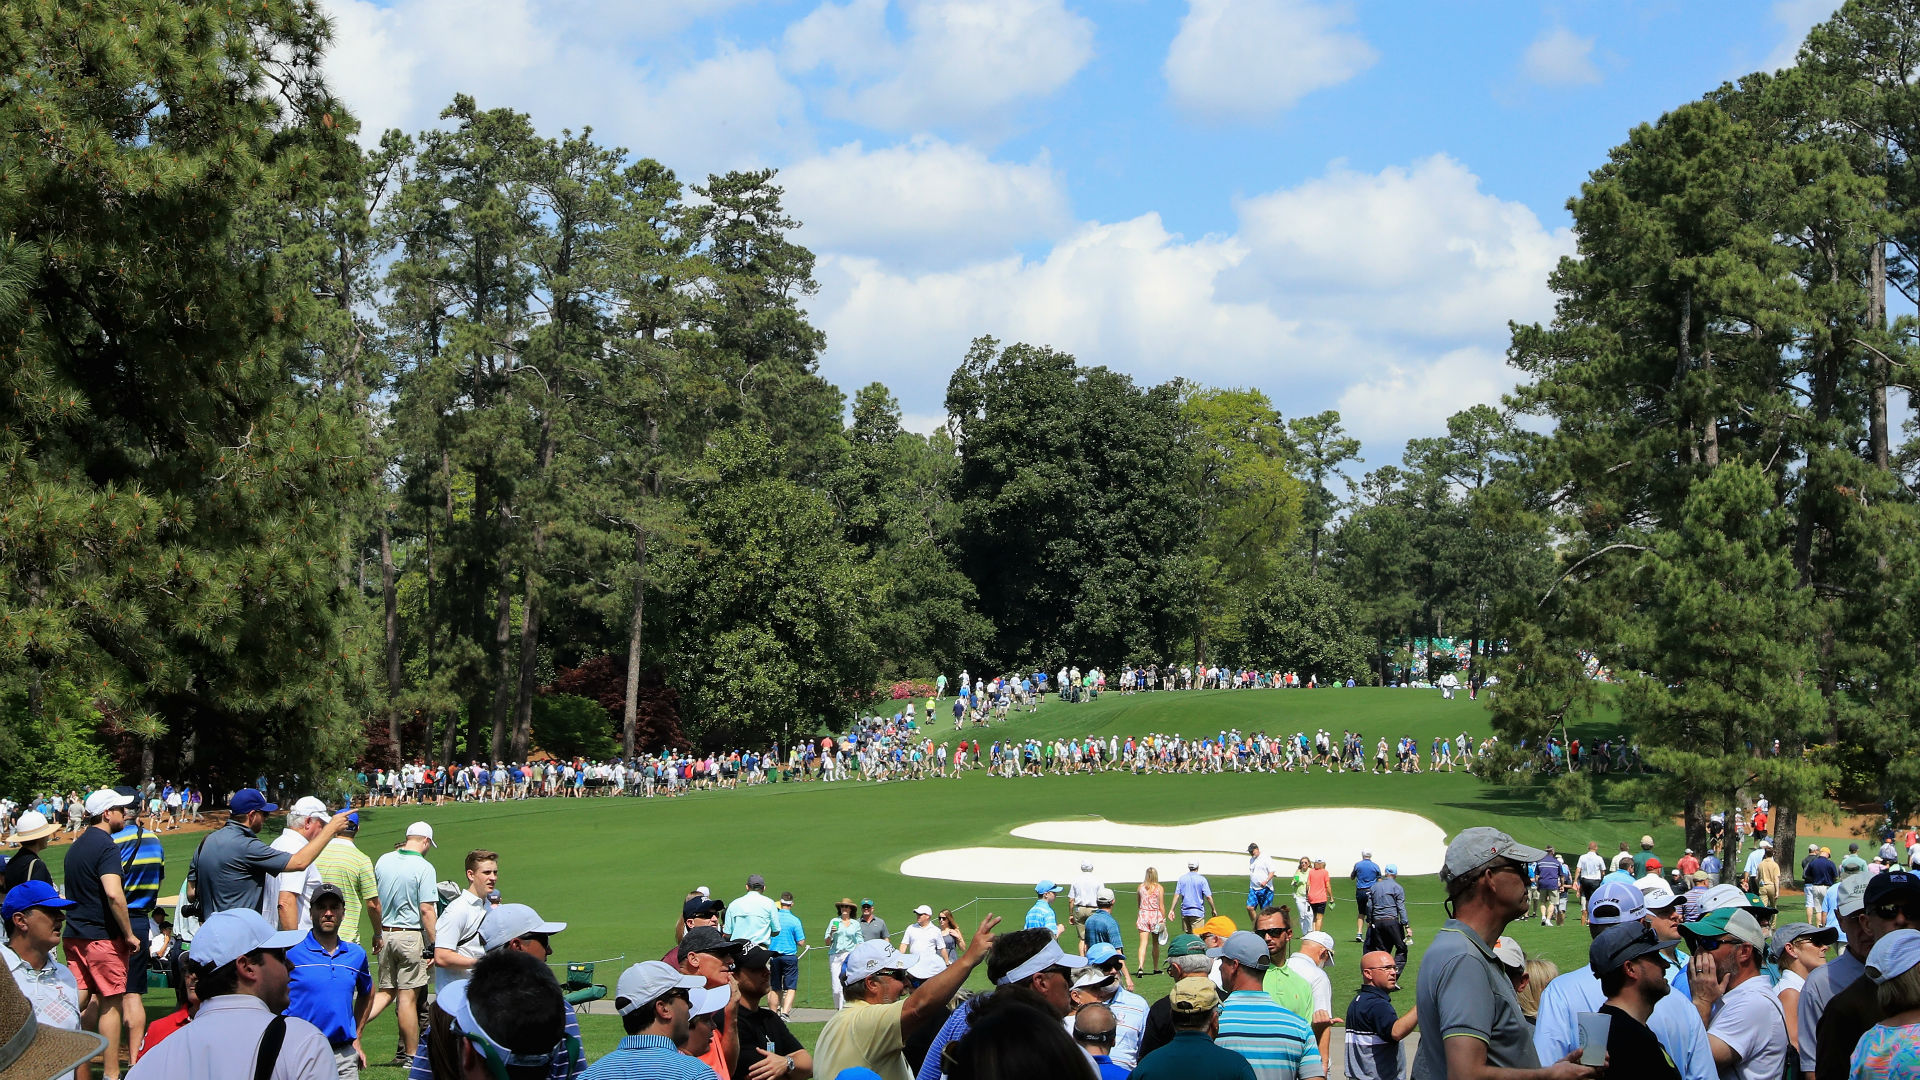 On the eve of the Masters, it has been announced that from 2019 Augusta will host a women's amateur event prior to the iconic major.